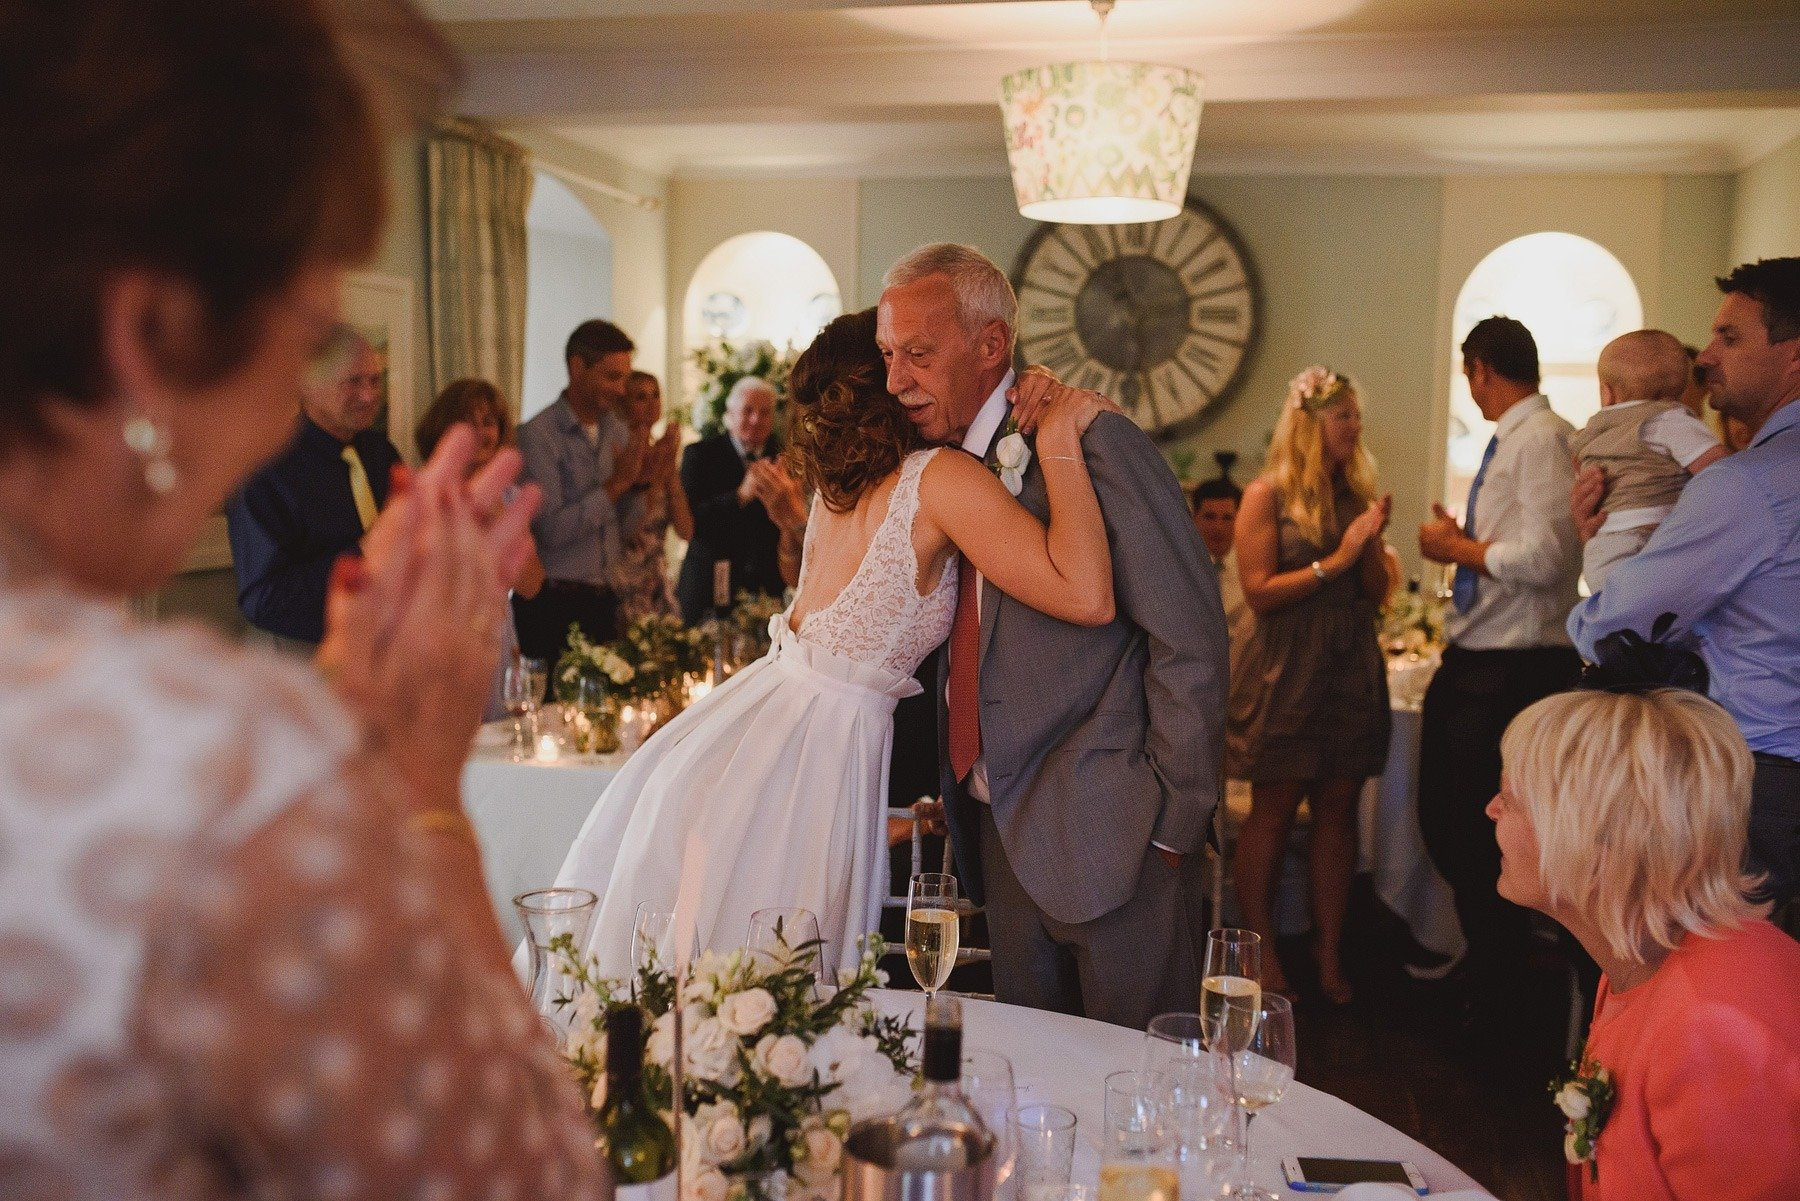 weddings at the rectory in crudwell